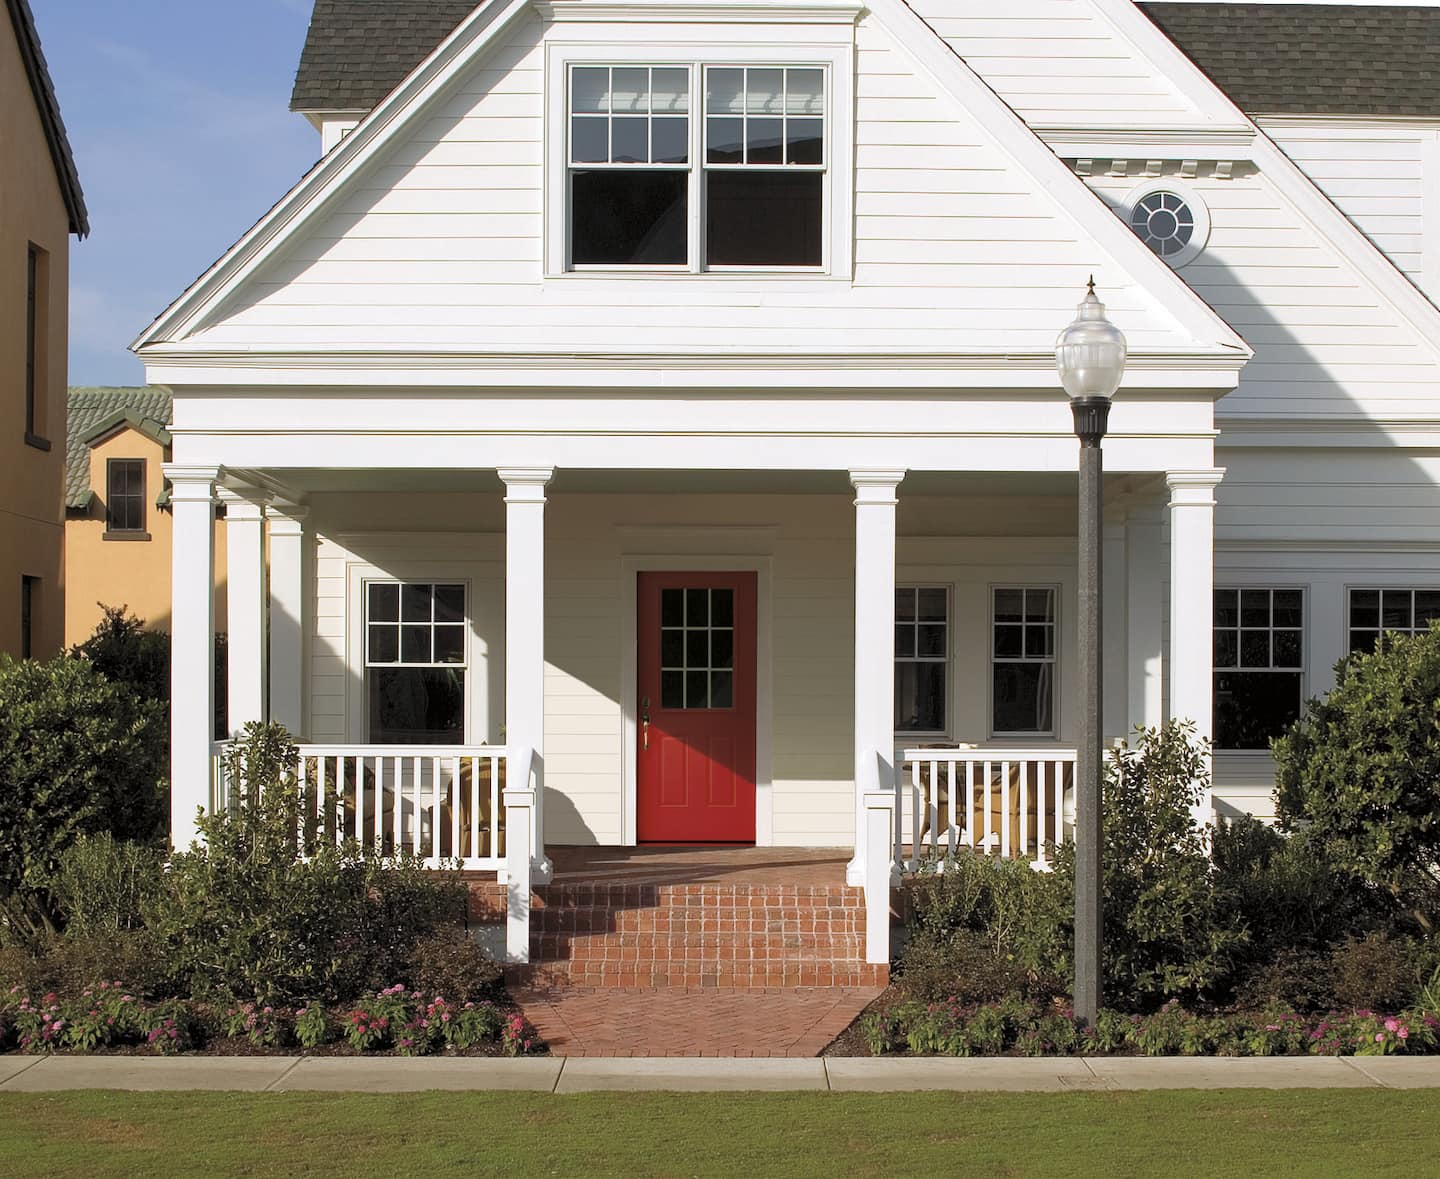 5 Things to Know About a Steel Door   Angie s List. Pella Entry Door Pricing. Home Design Ideas